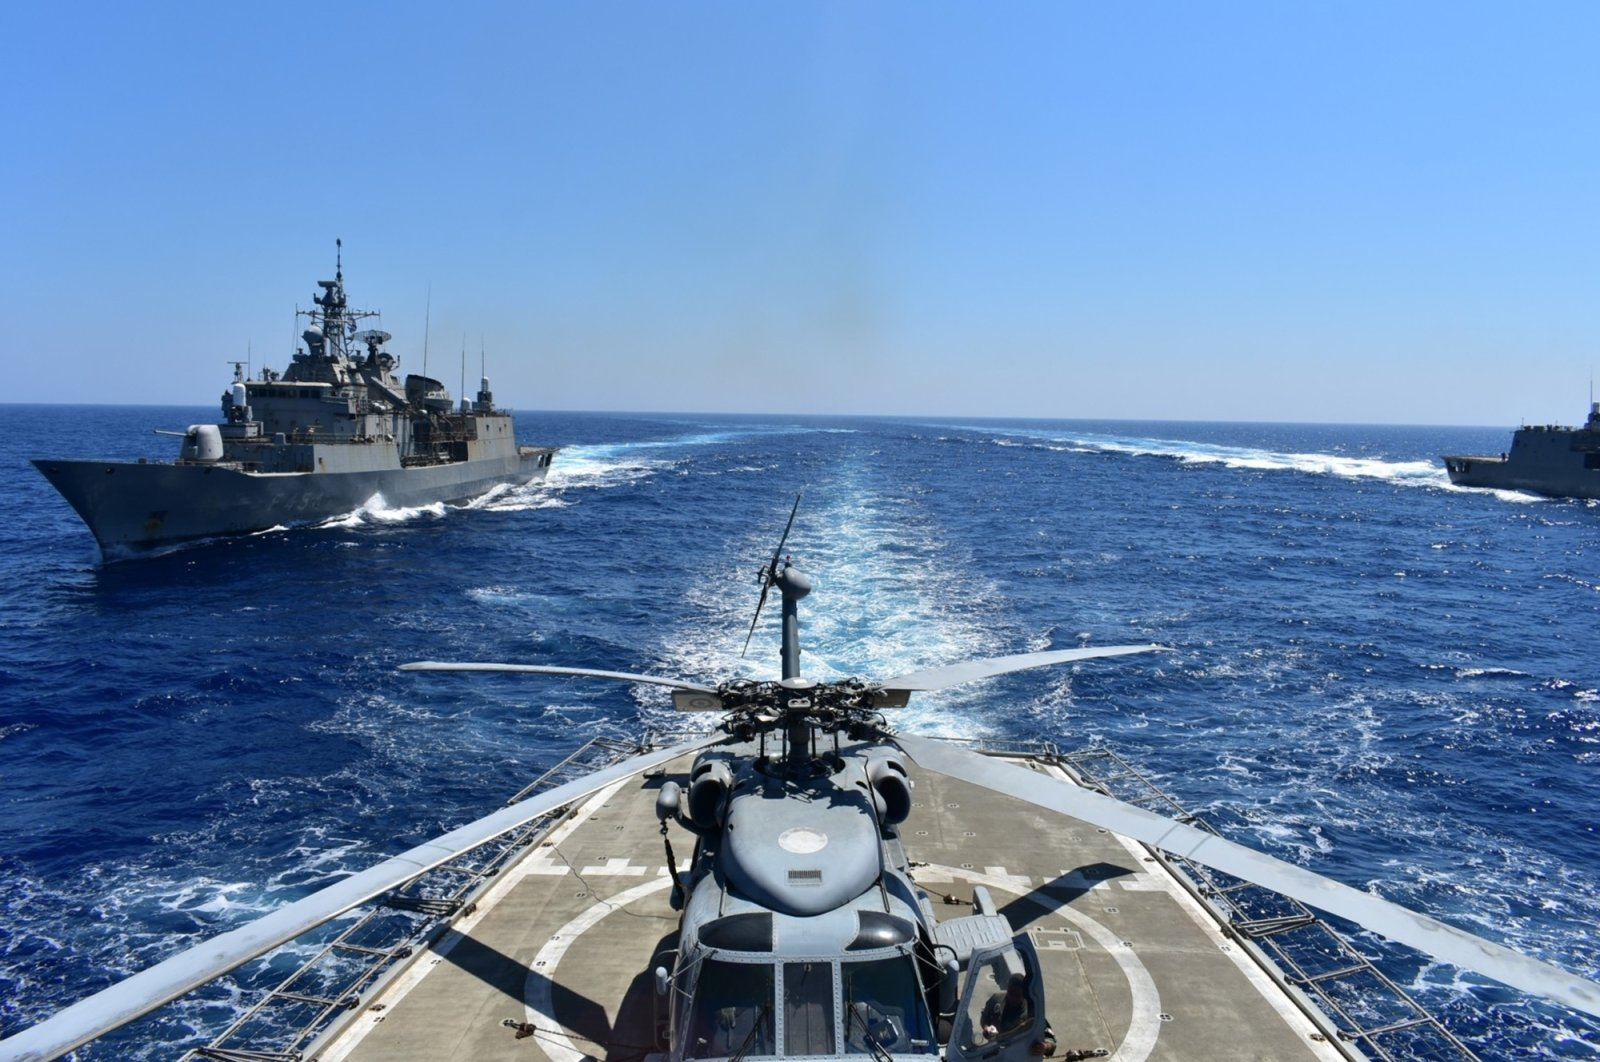 Greek warships take part in a military exercise in Eastern Mediterranean sea, Aug. 25, 2020. (AP Photo)